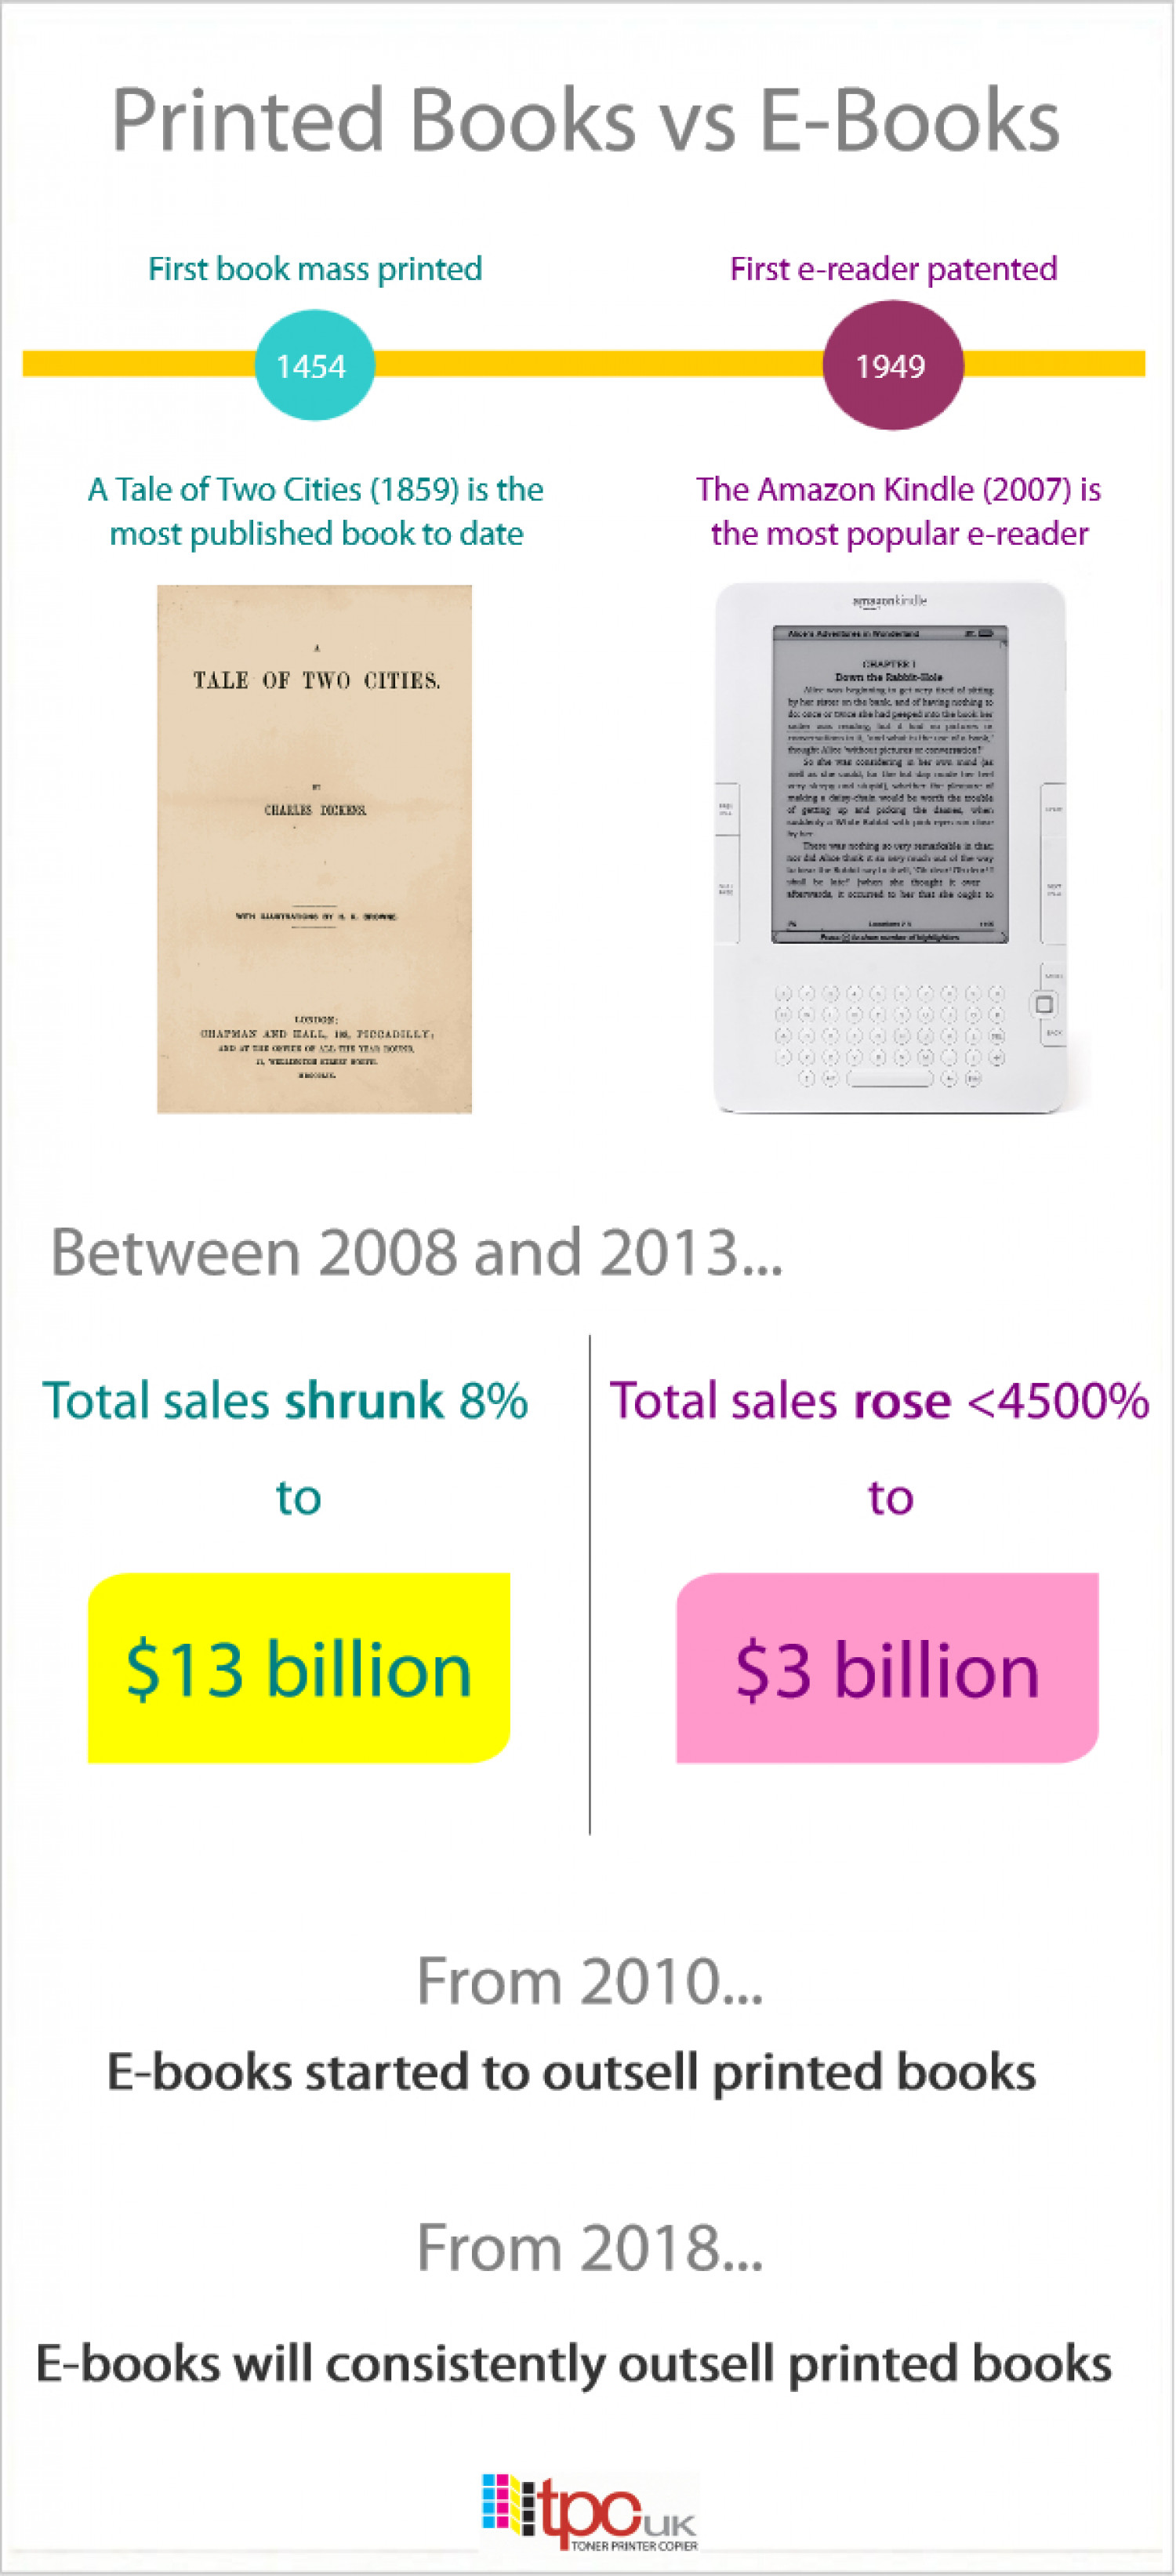 Printed Books vs E-Books Infographic